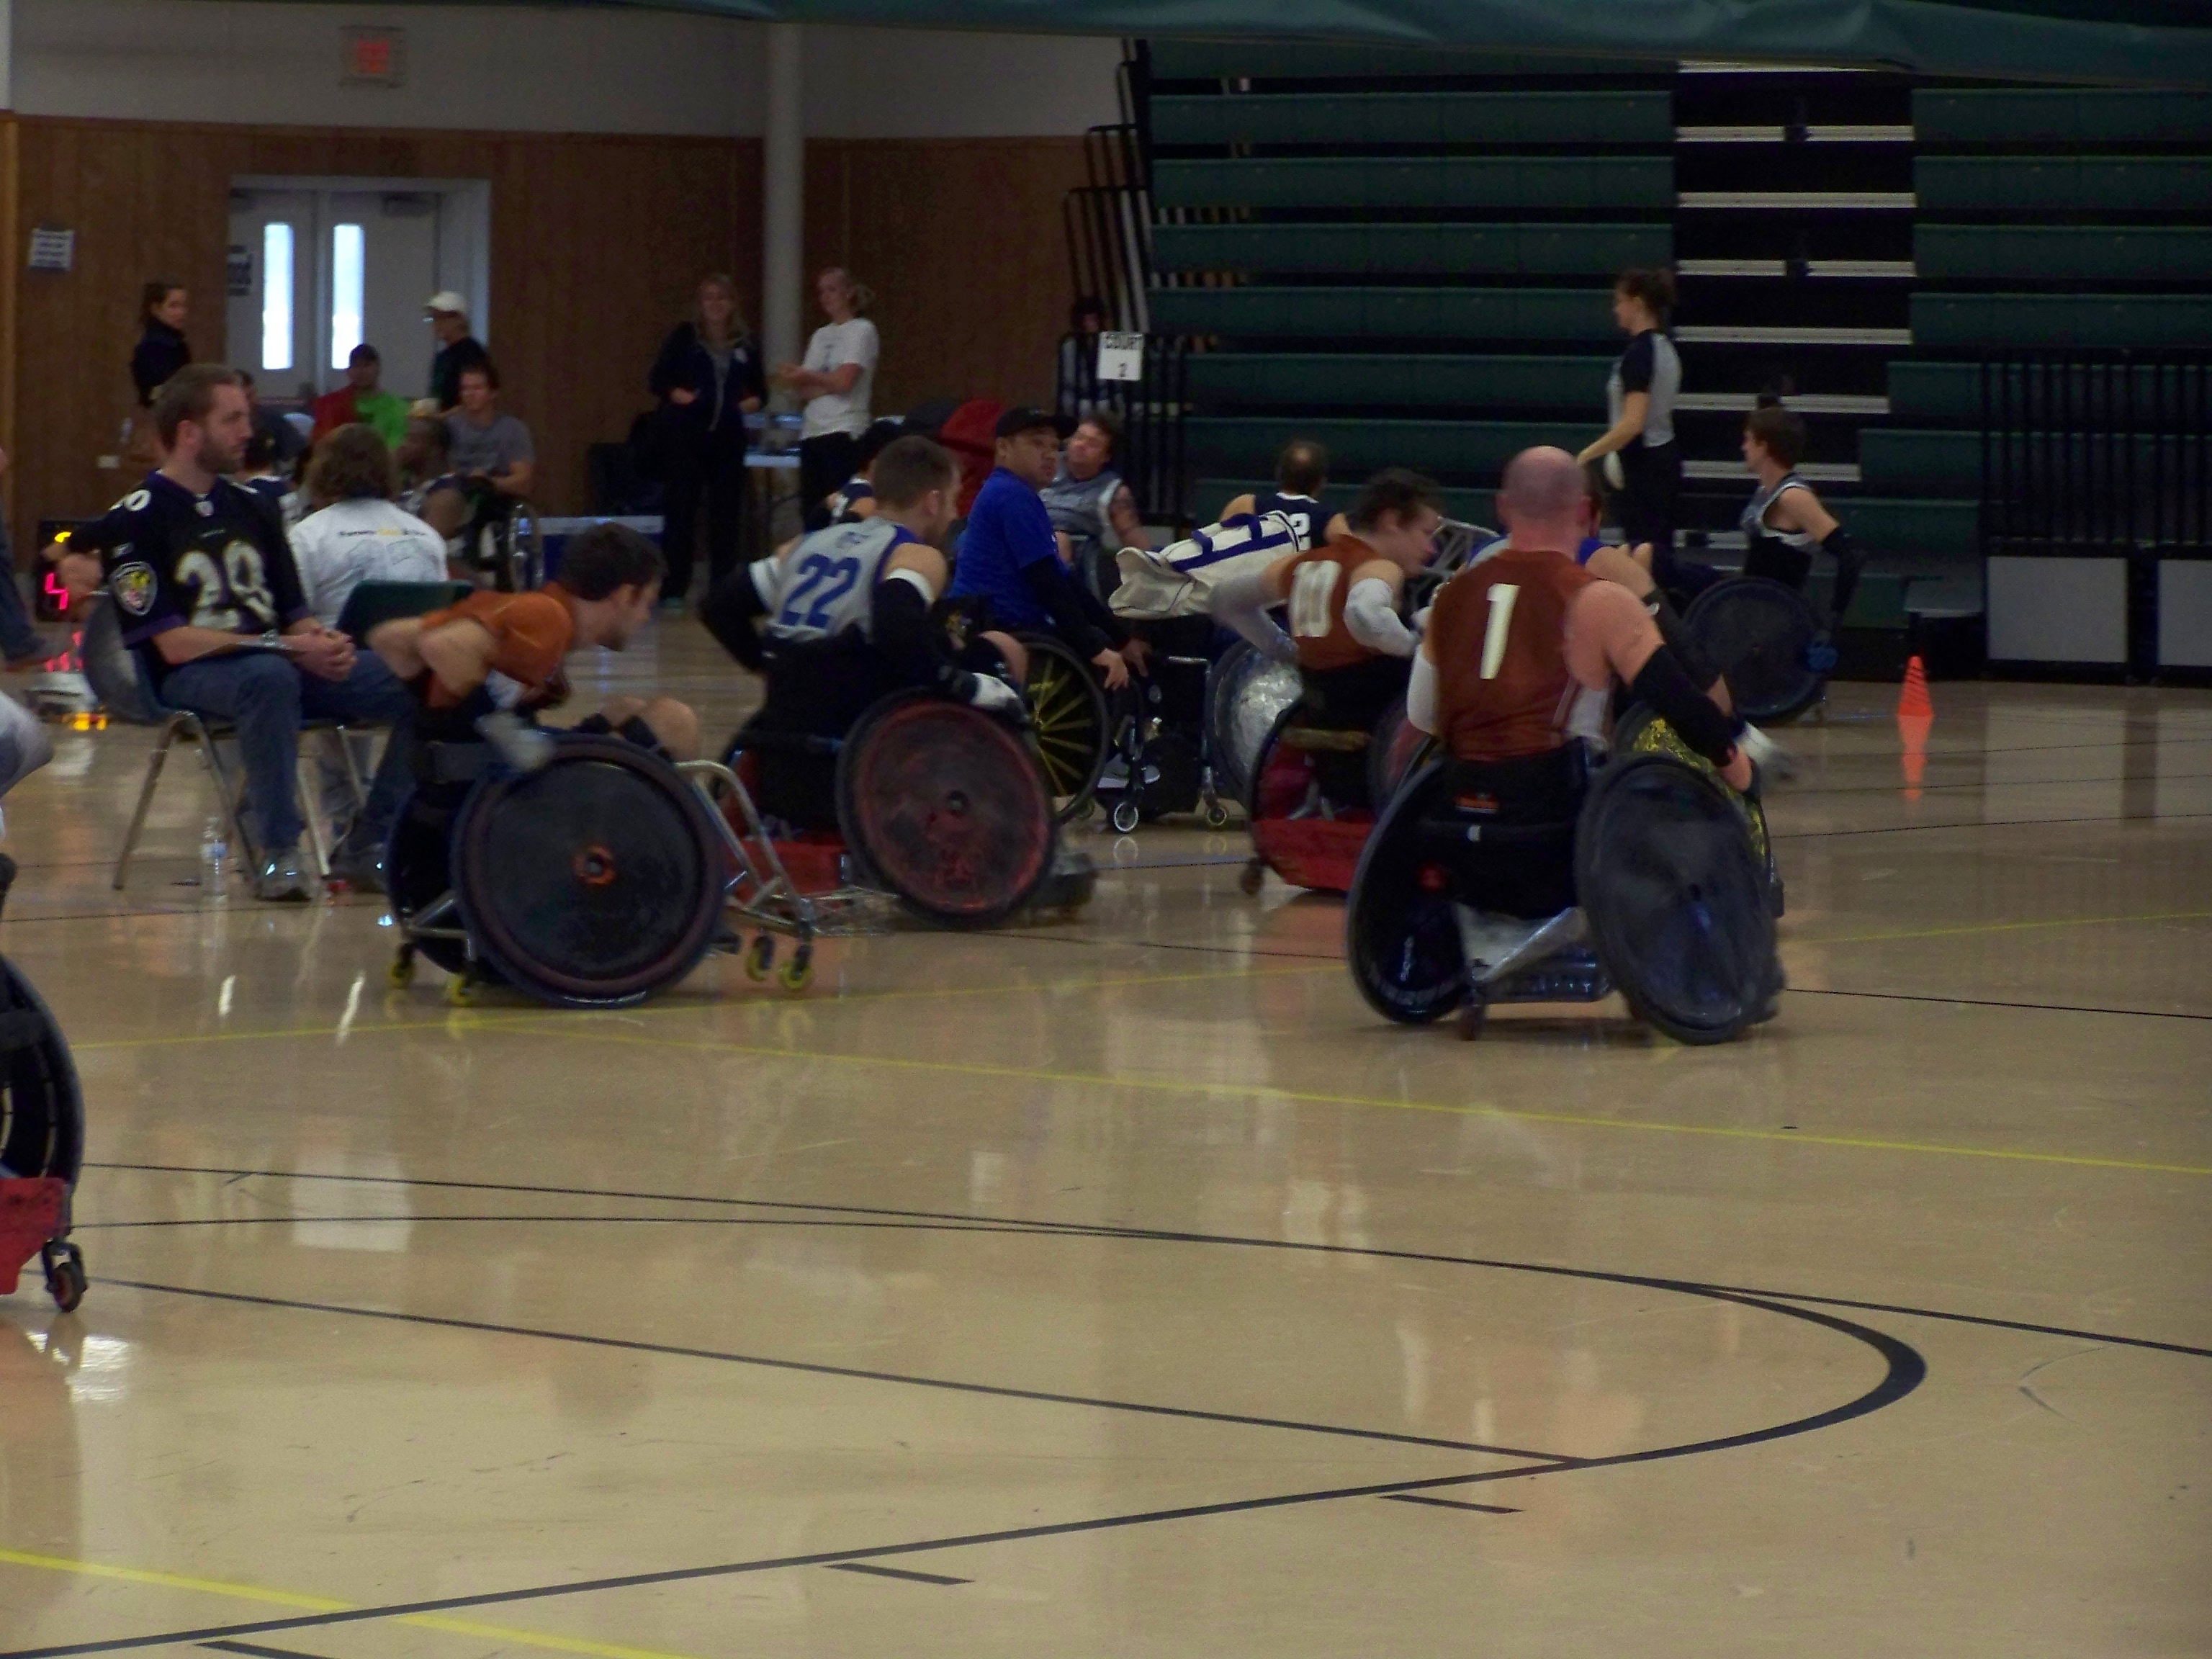 WheelChair Rugby 2012